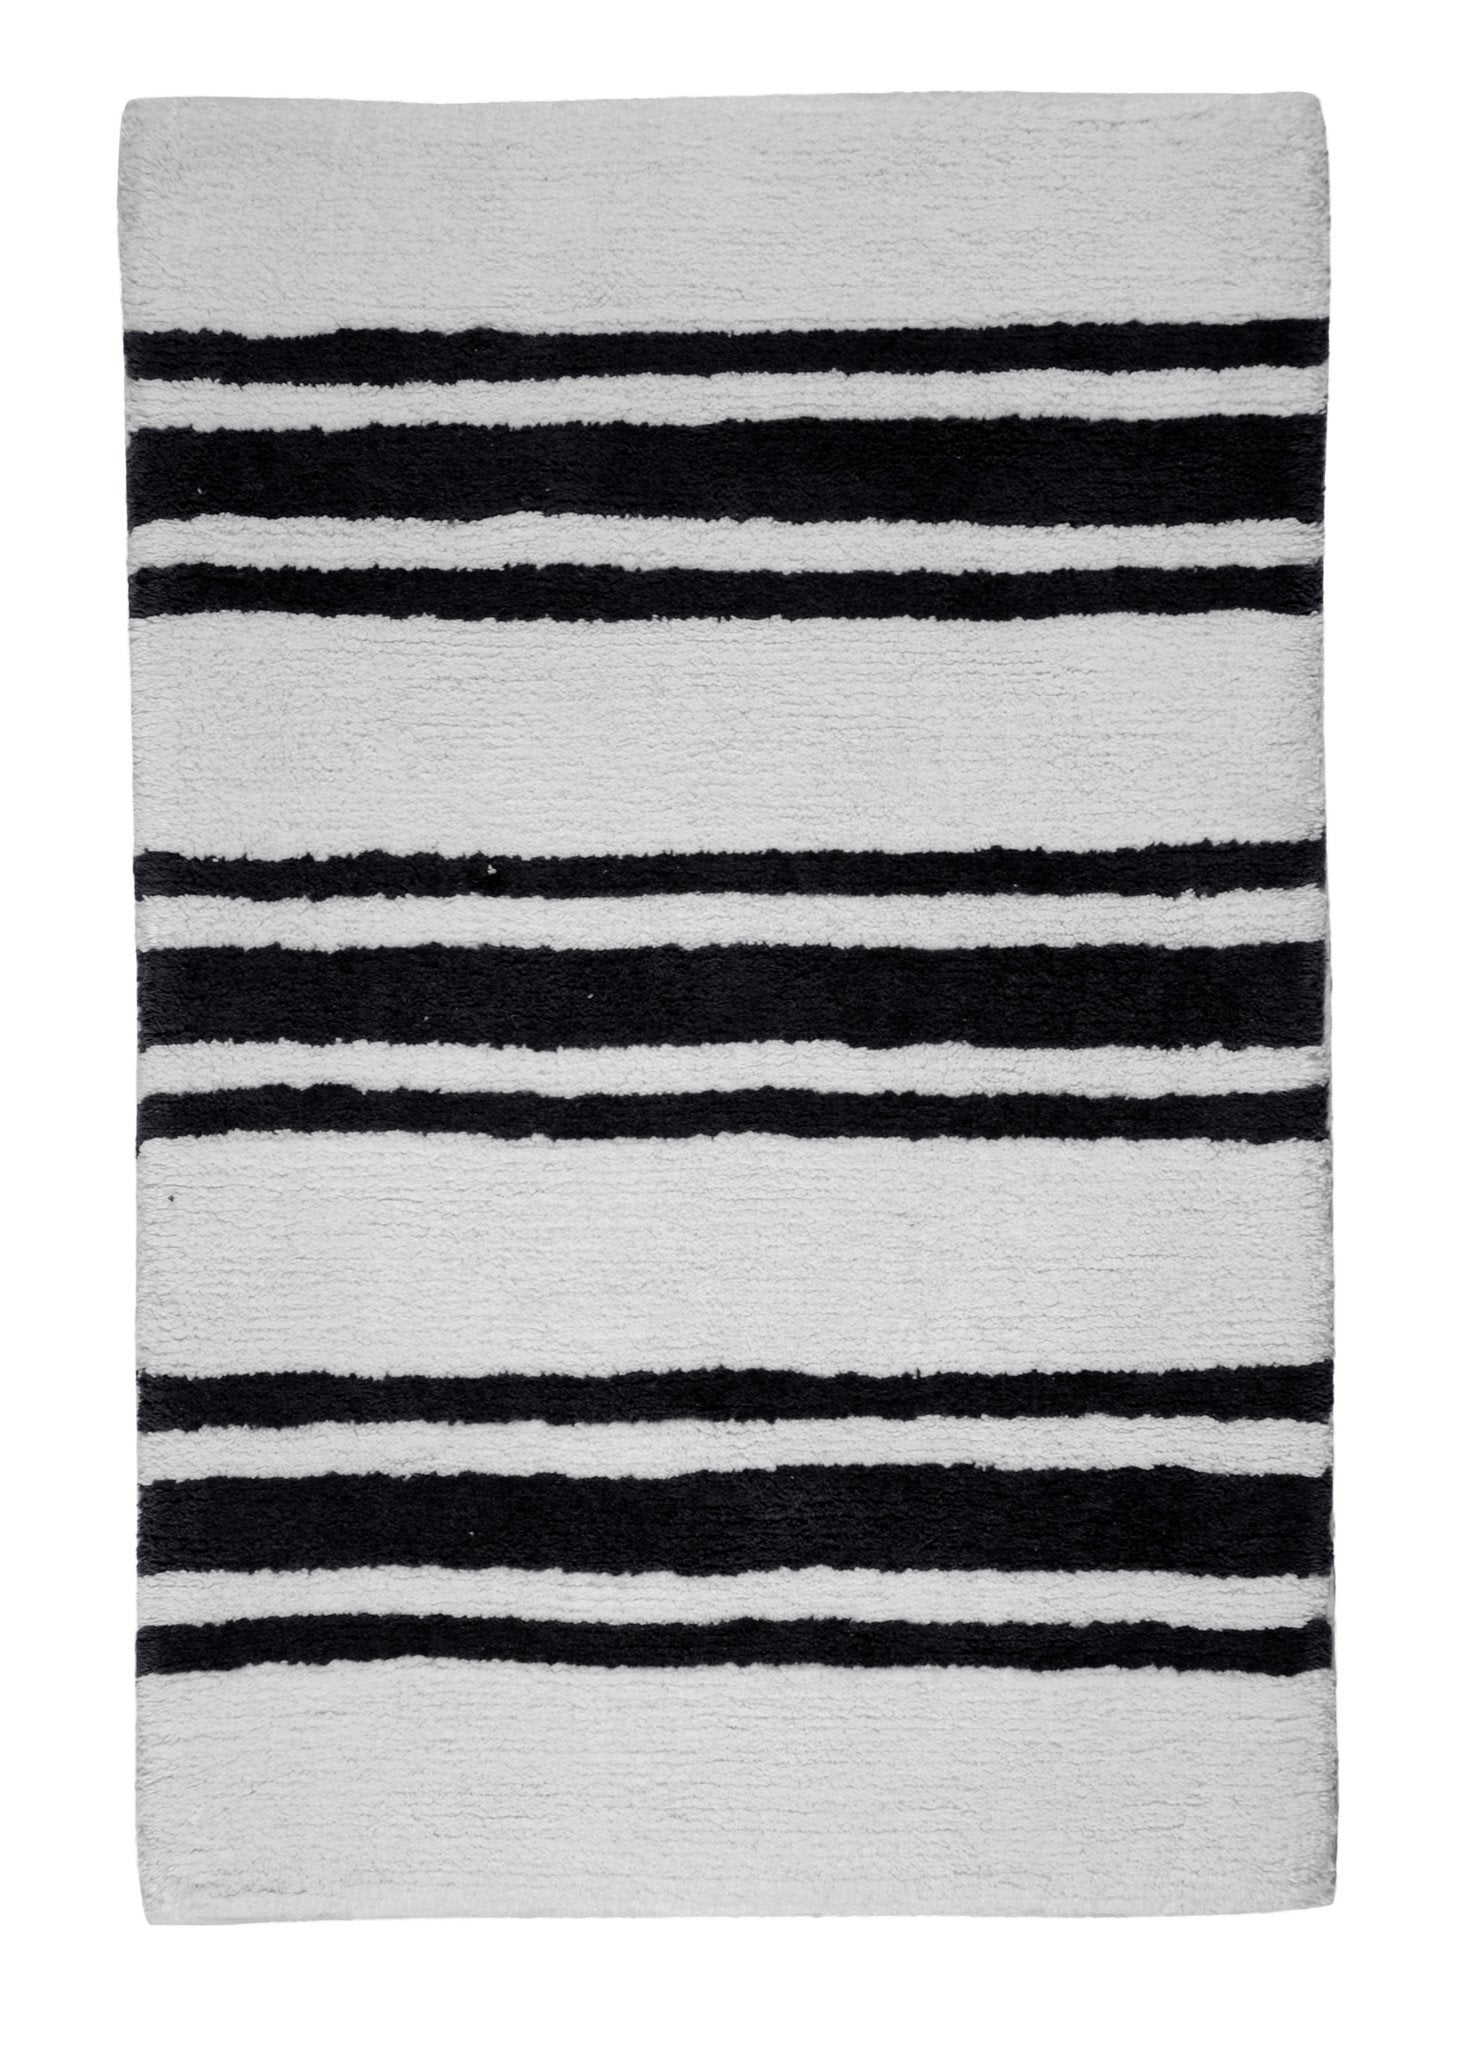 Stripe Midnight Bath Carpet - Departures & Arrivals  - 1